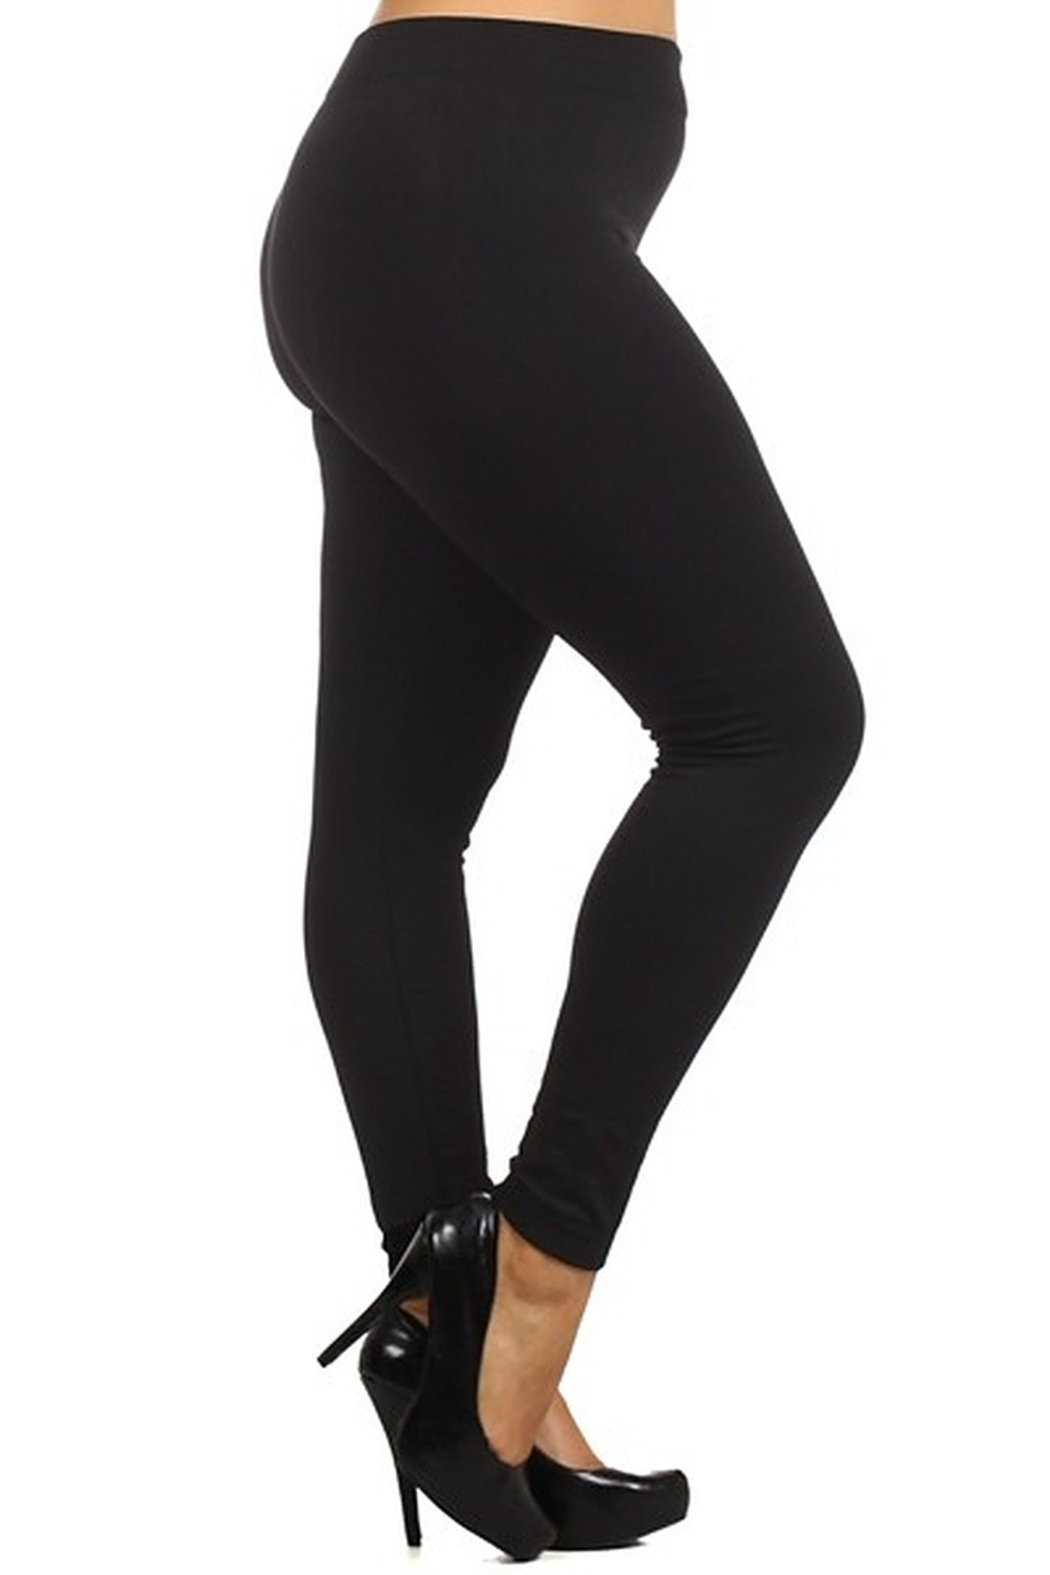 Red Ribbon FLEECE LINED LEGGING - Front Cropped Image